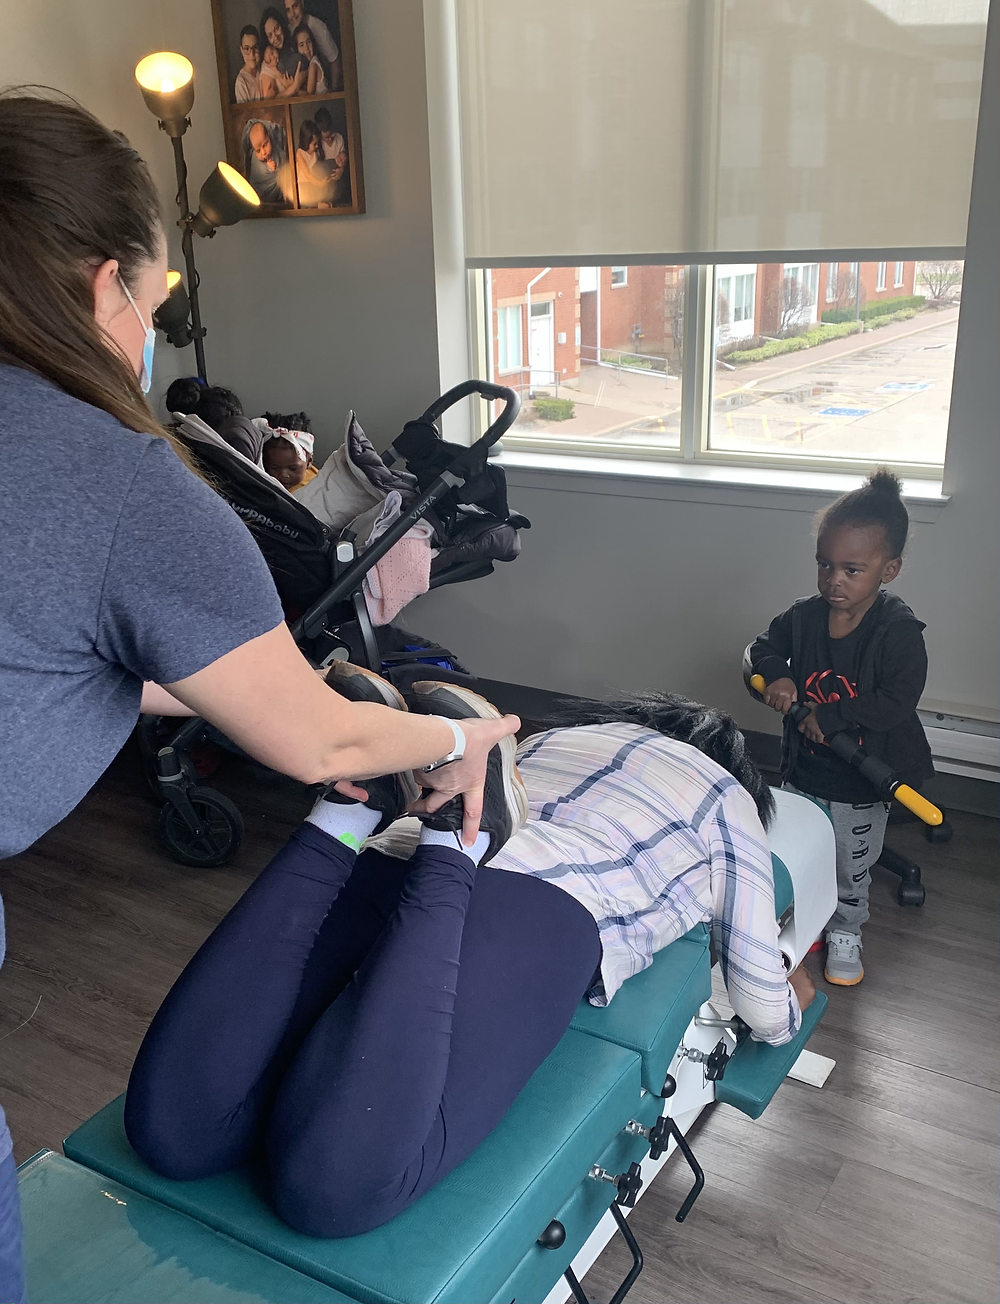 HIona gets adjusted with the gentle chiropractic Thompson Technique while her son watches